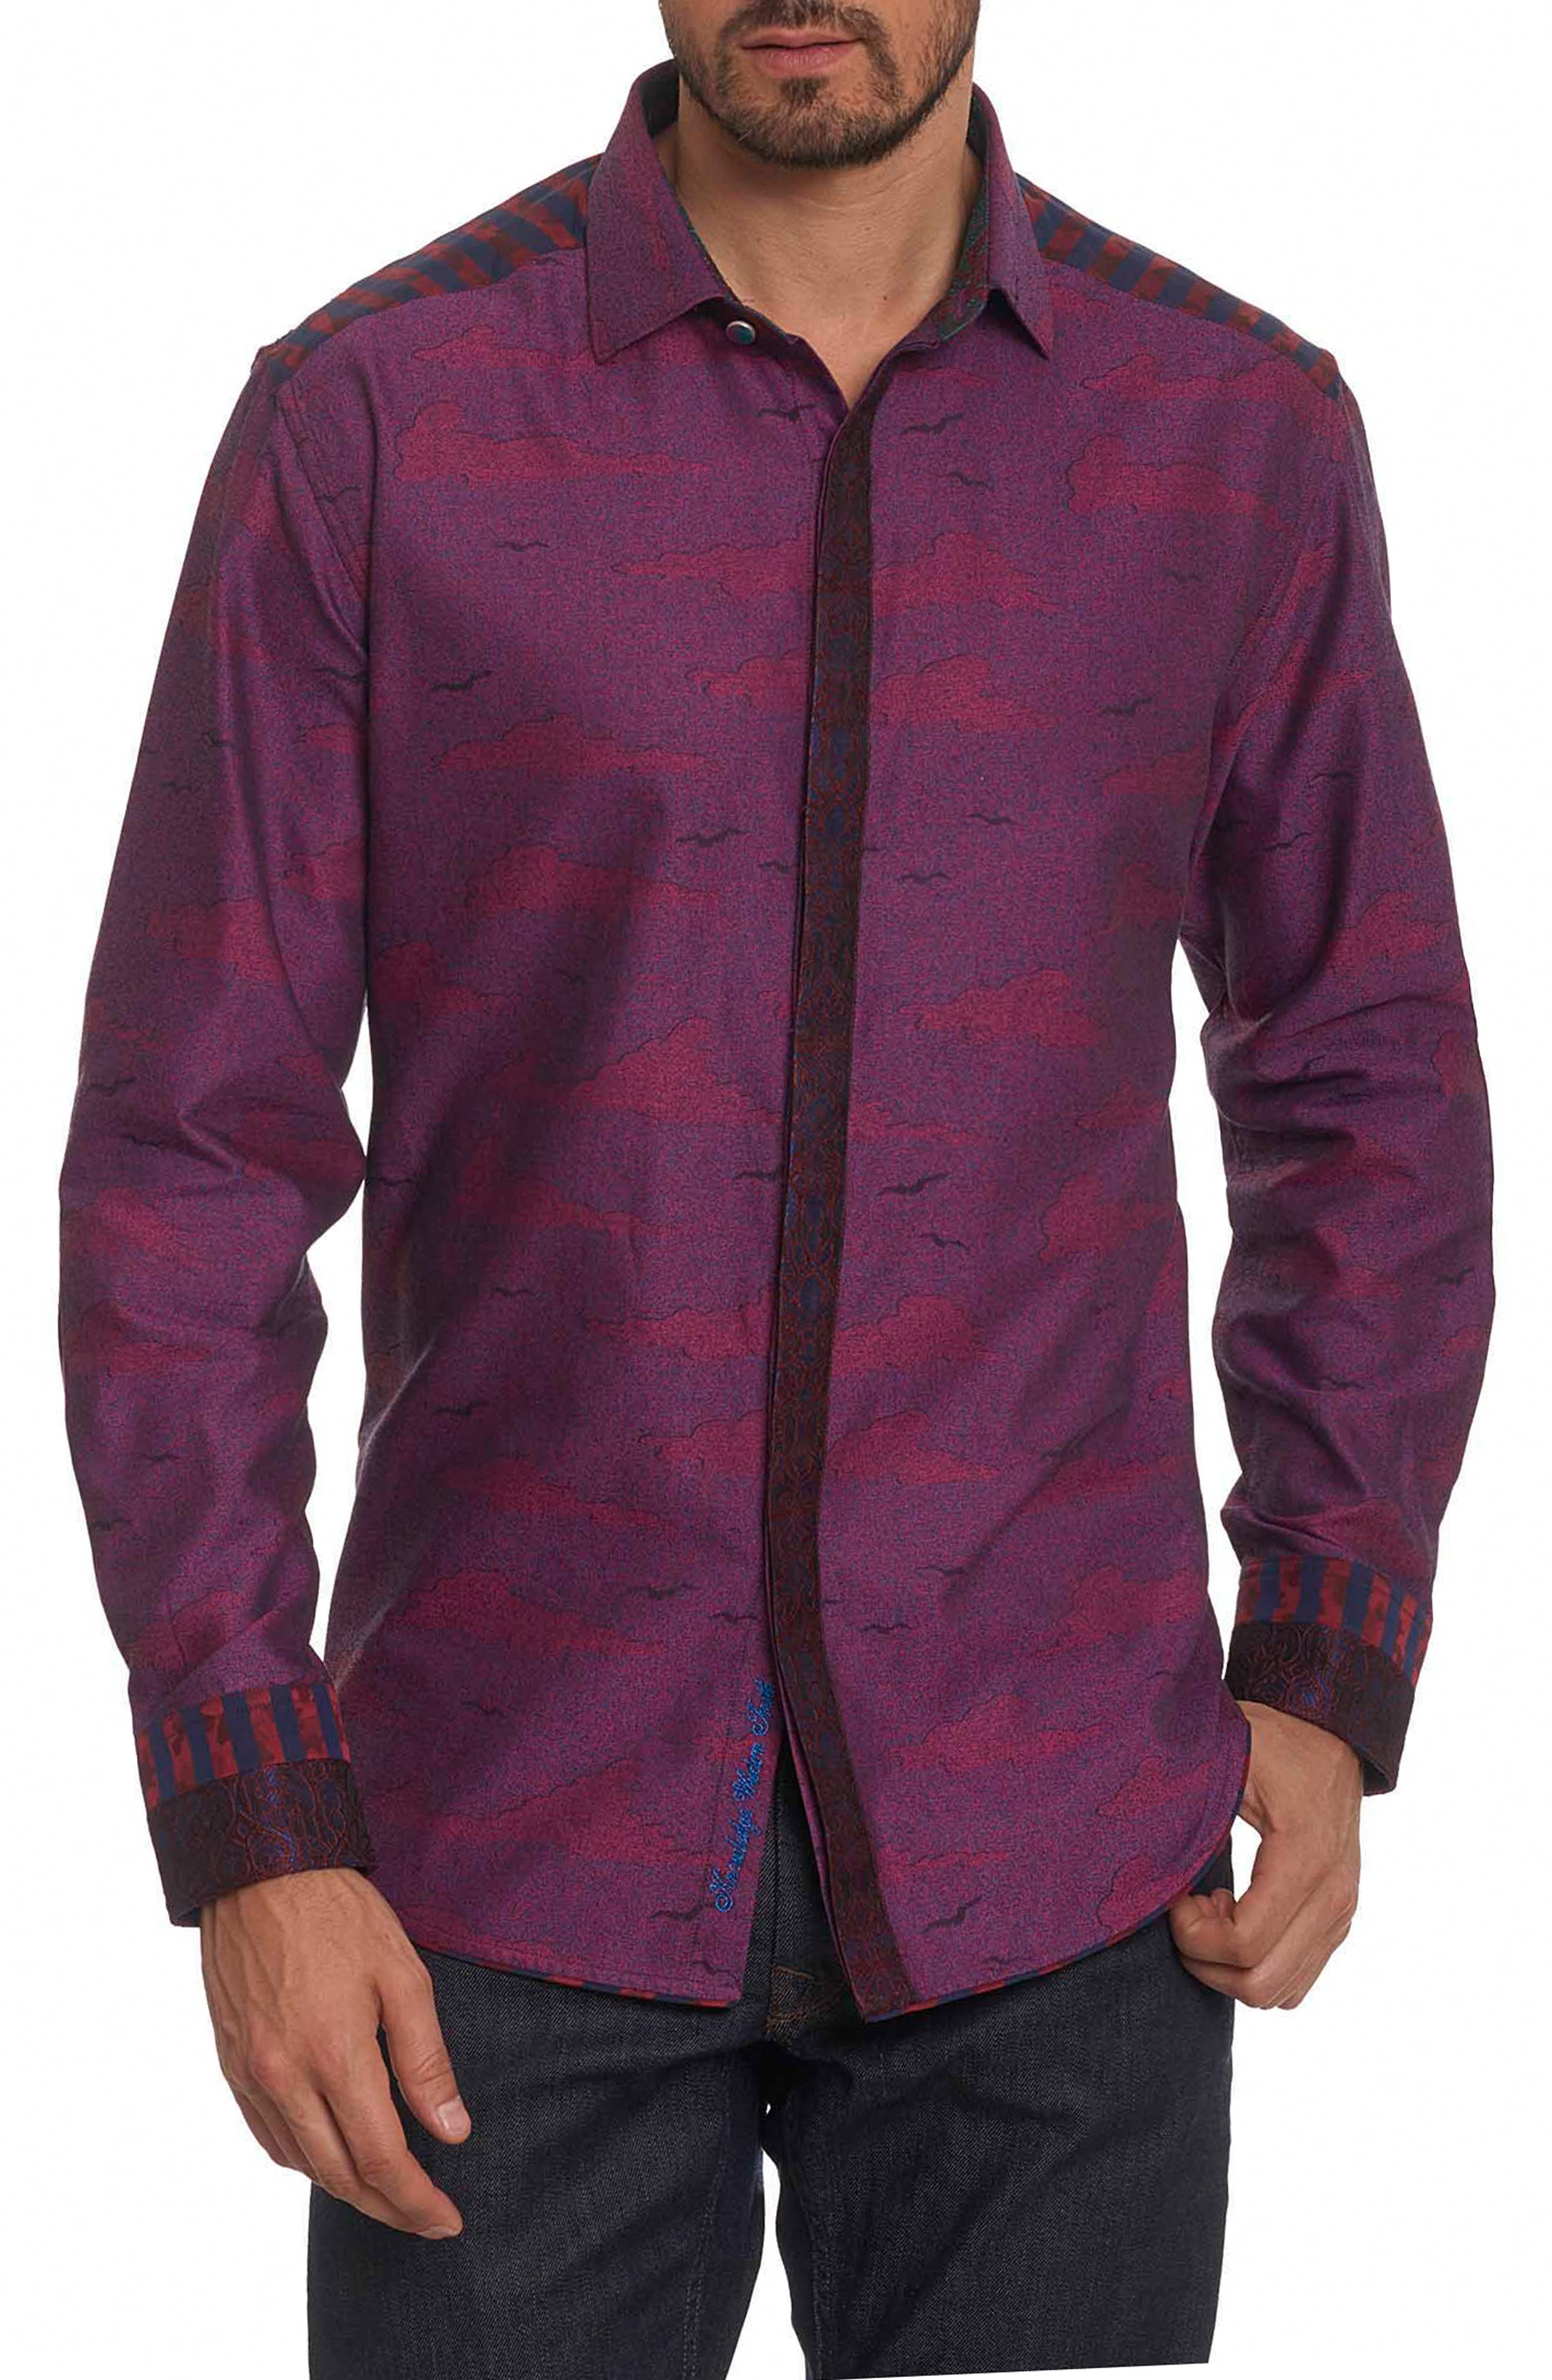 Drakon Limited Edition Classic Fit Sport Shirt,                             Main thumbnail 1, color,                             Merlot